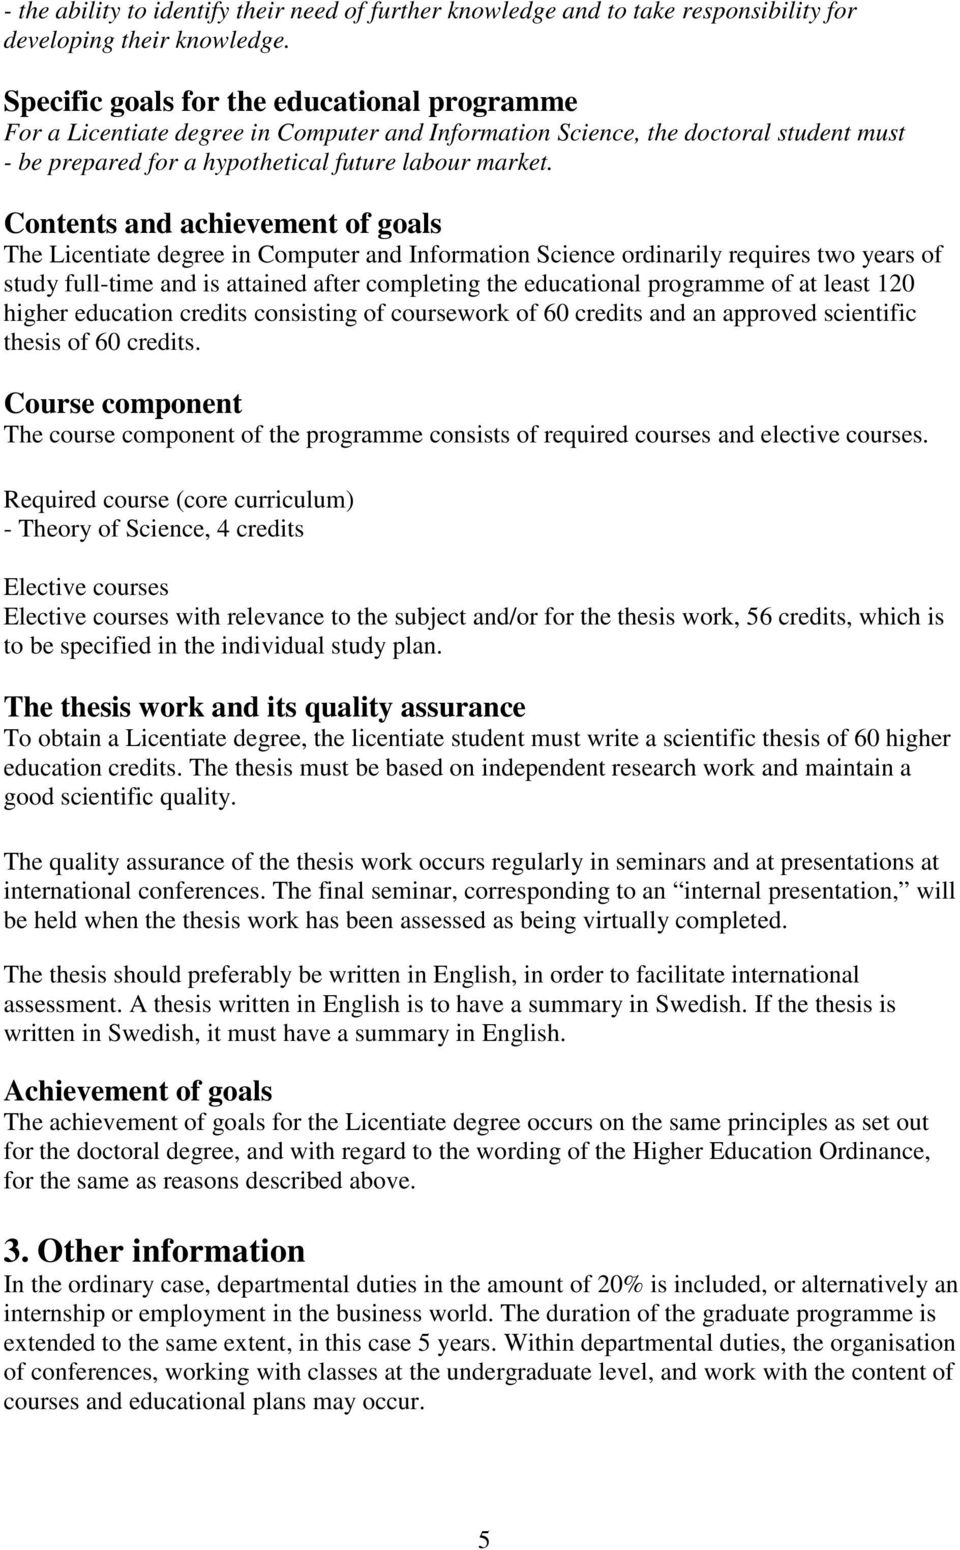 Contents and achievement of goals The Licentiate degree in Computer and Information Science ordinarily requires two years of study full-time and is attained after completing the educational programme